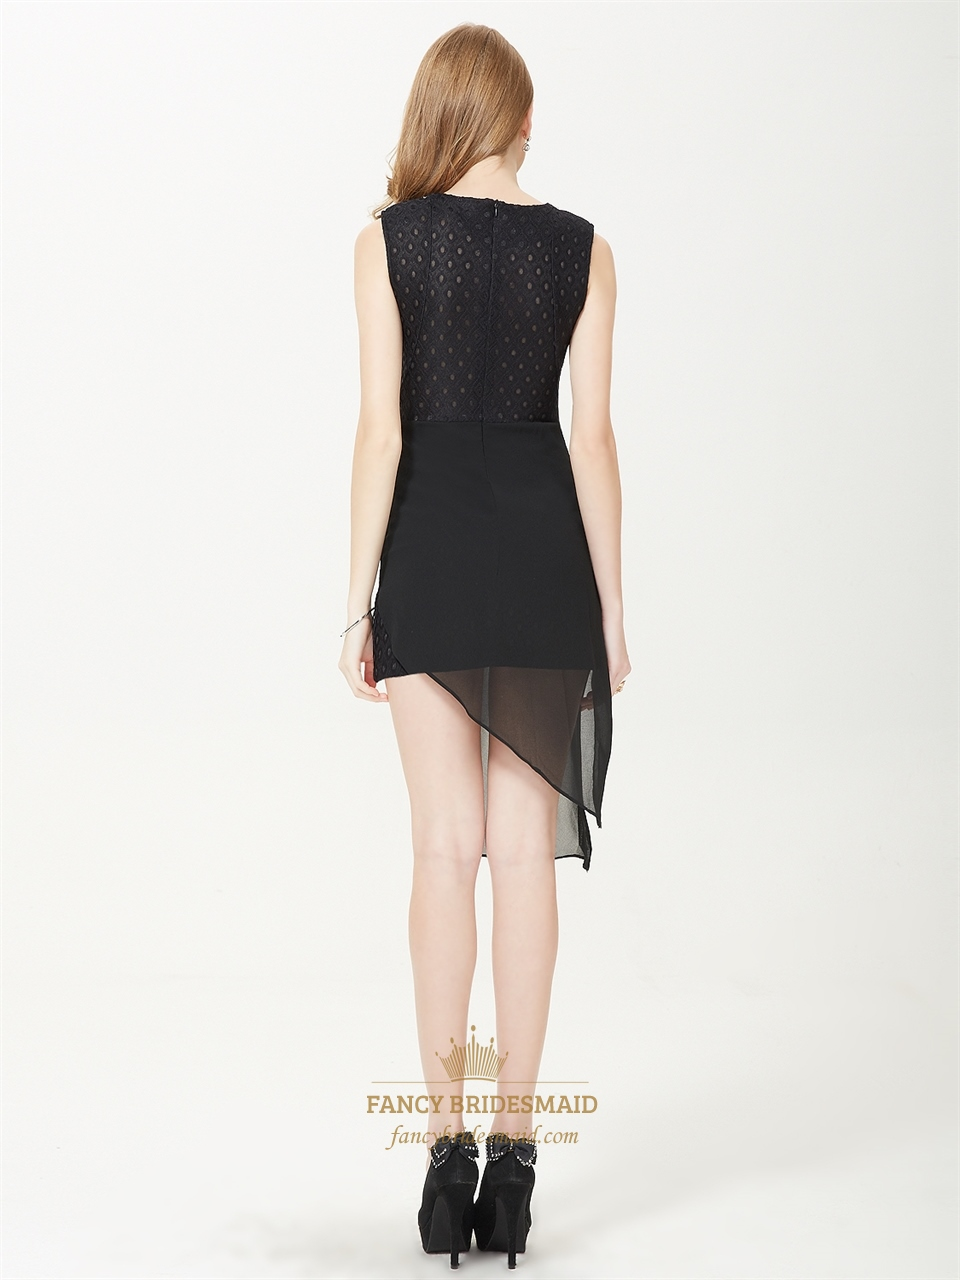 Black Asymmetrical Dresses Black Cocktail Dresses With